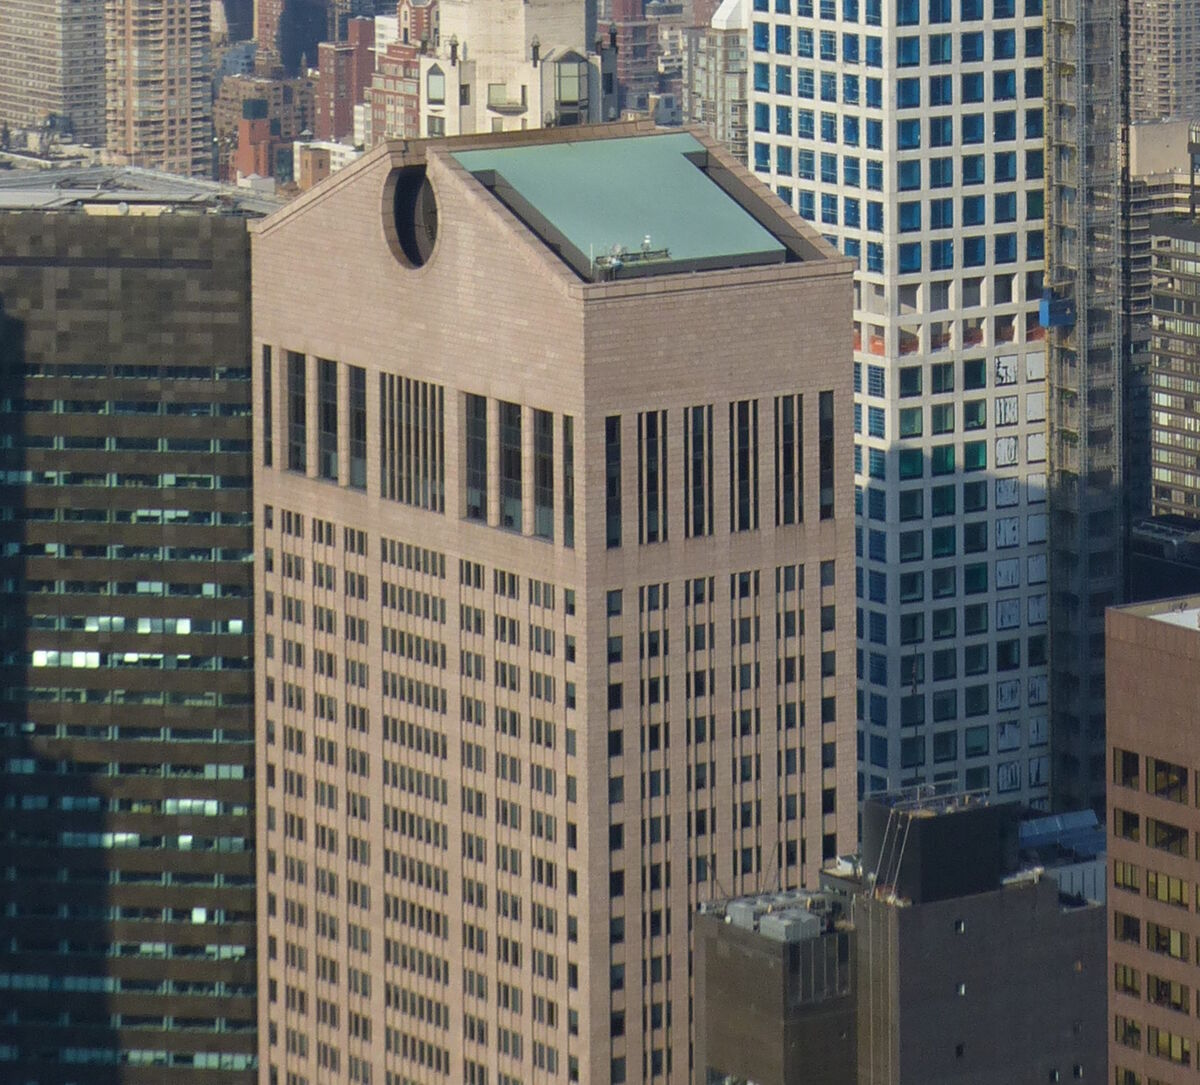 550 Madison Avenue, better known as the AT&T Building, designed by architects Philip Johnson and John Burgee. Photo by Citizen59, via Wikimedia Commons